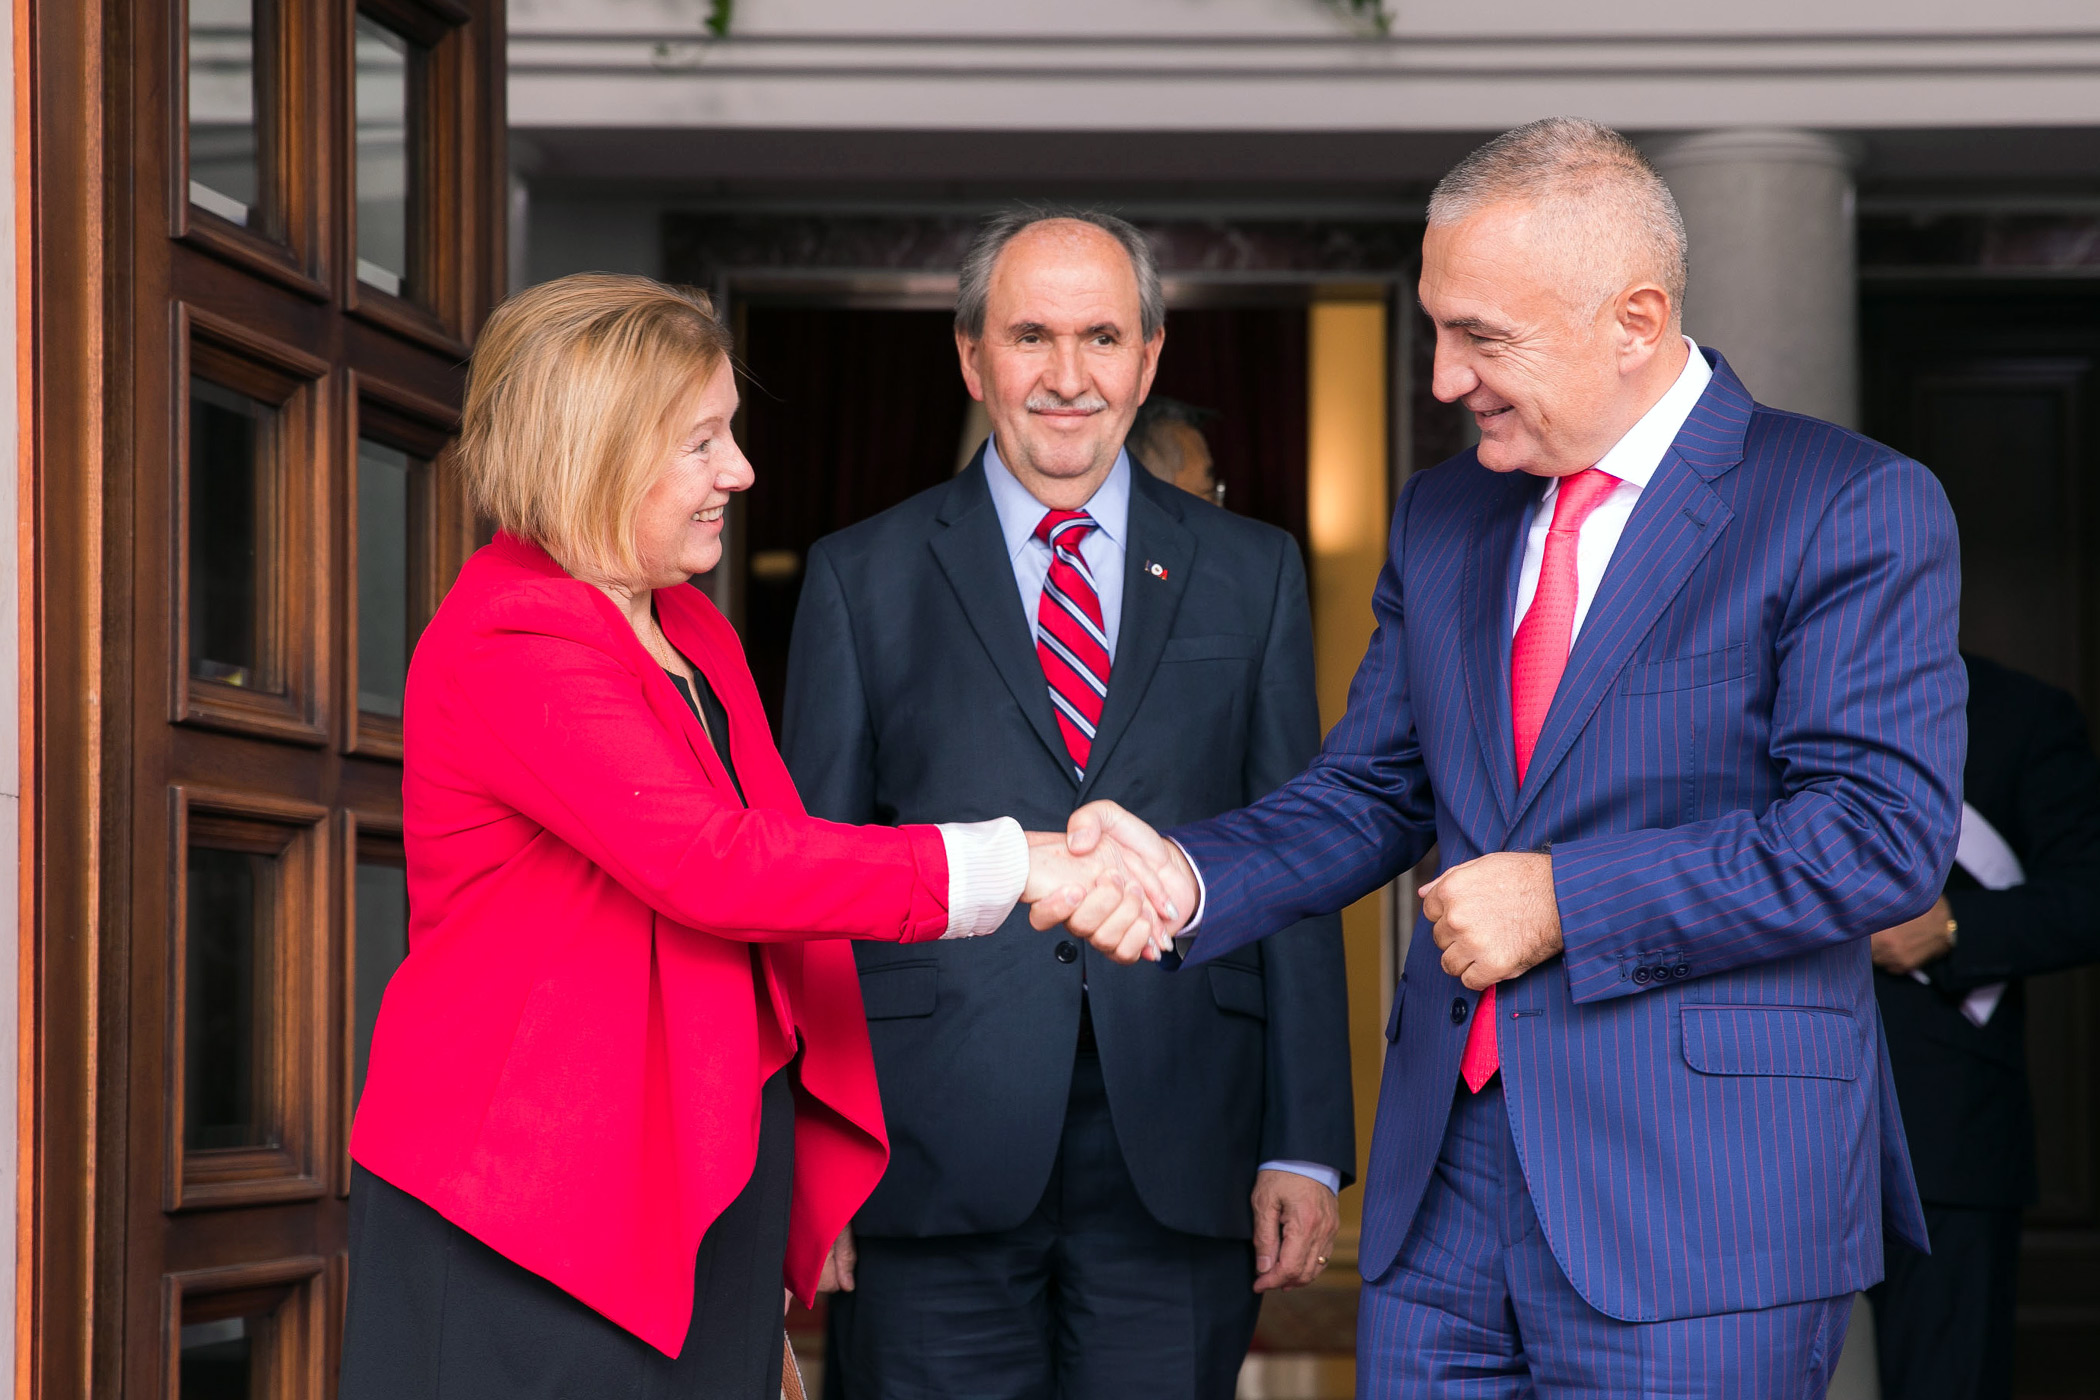 A woman shakes the hand of a man while a third person stands between them